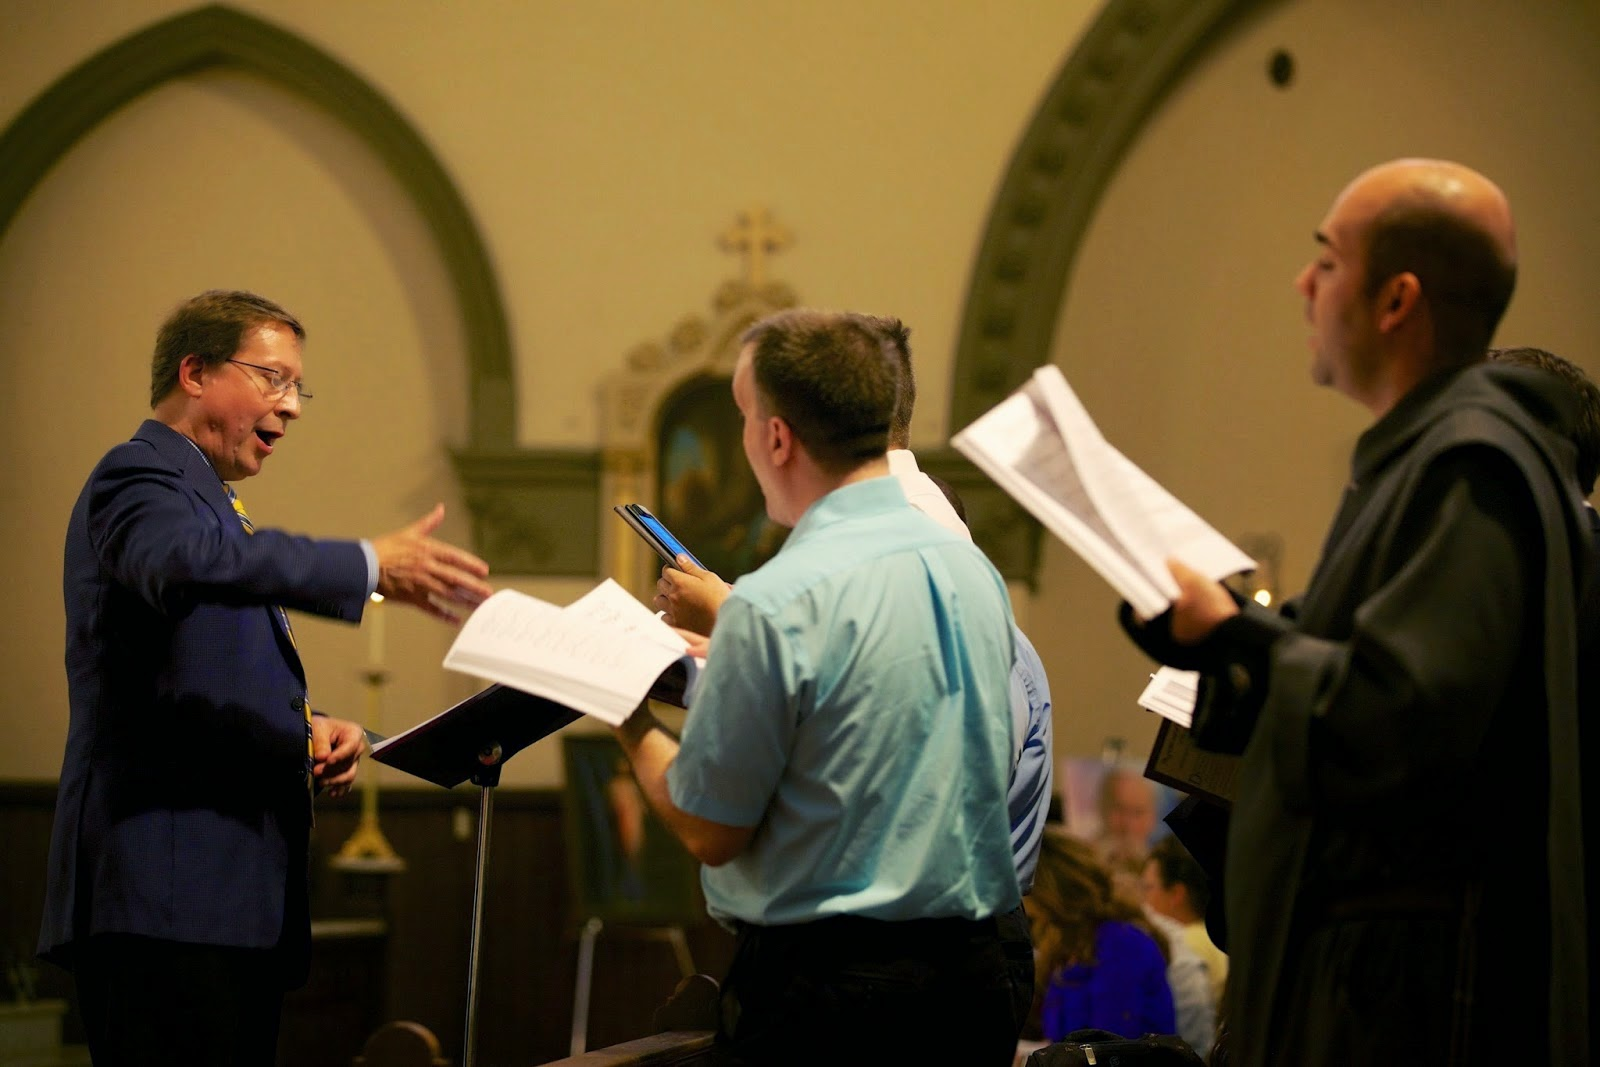 Technology for the Church Singer: Choral Singing from a Tablet